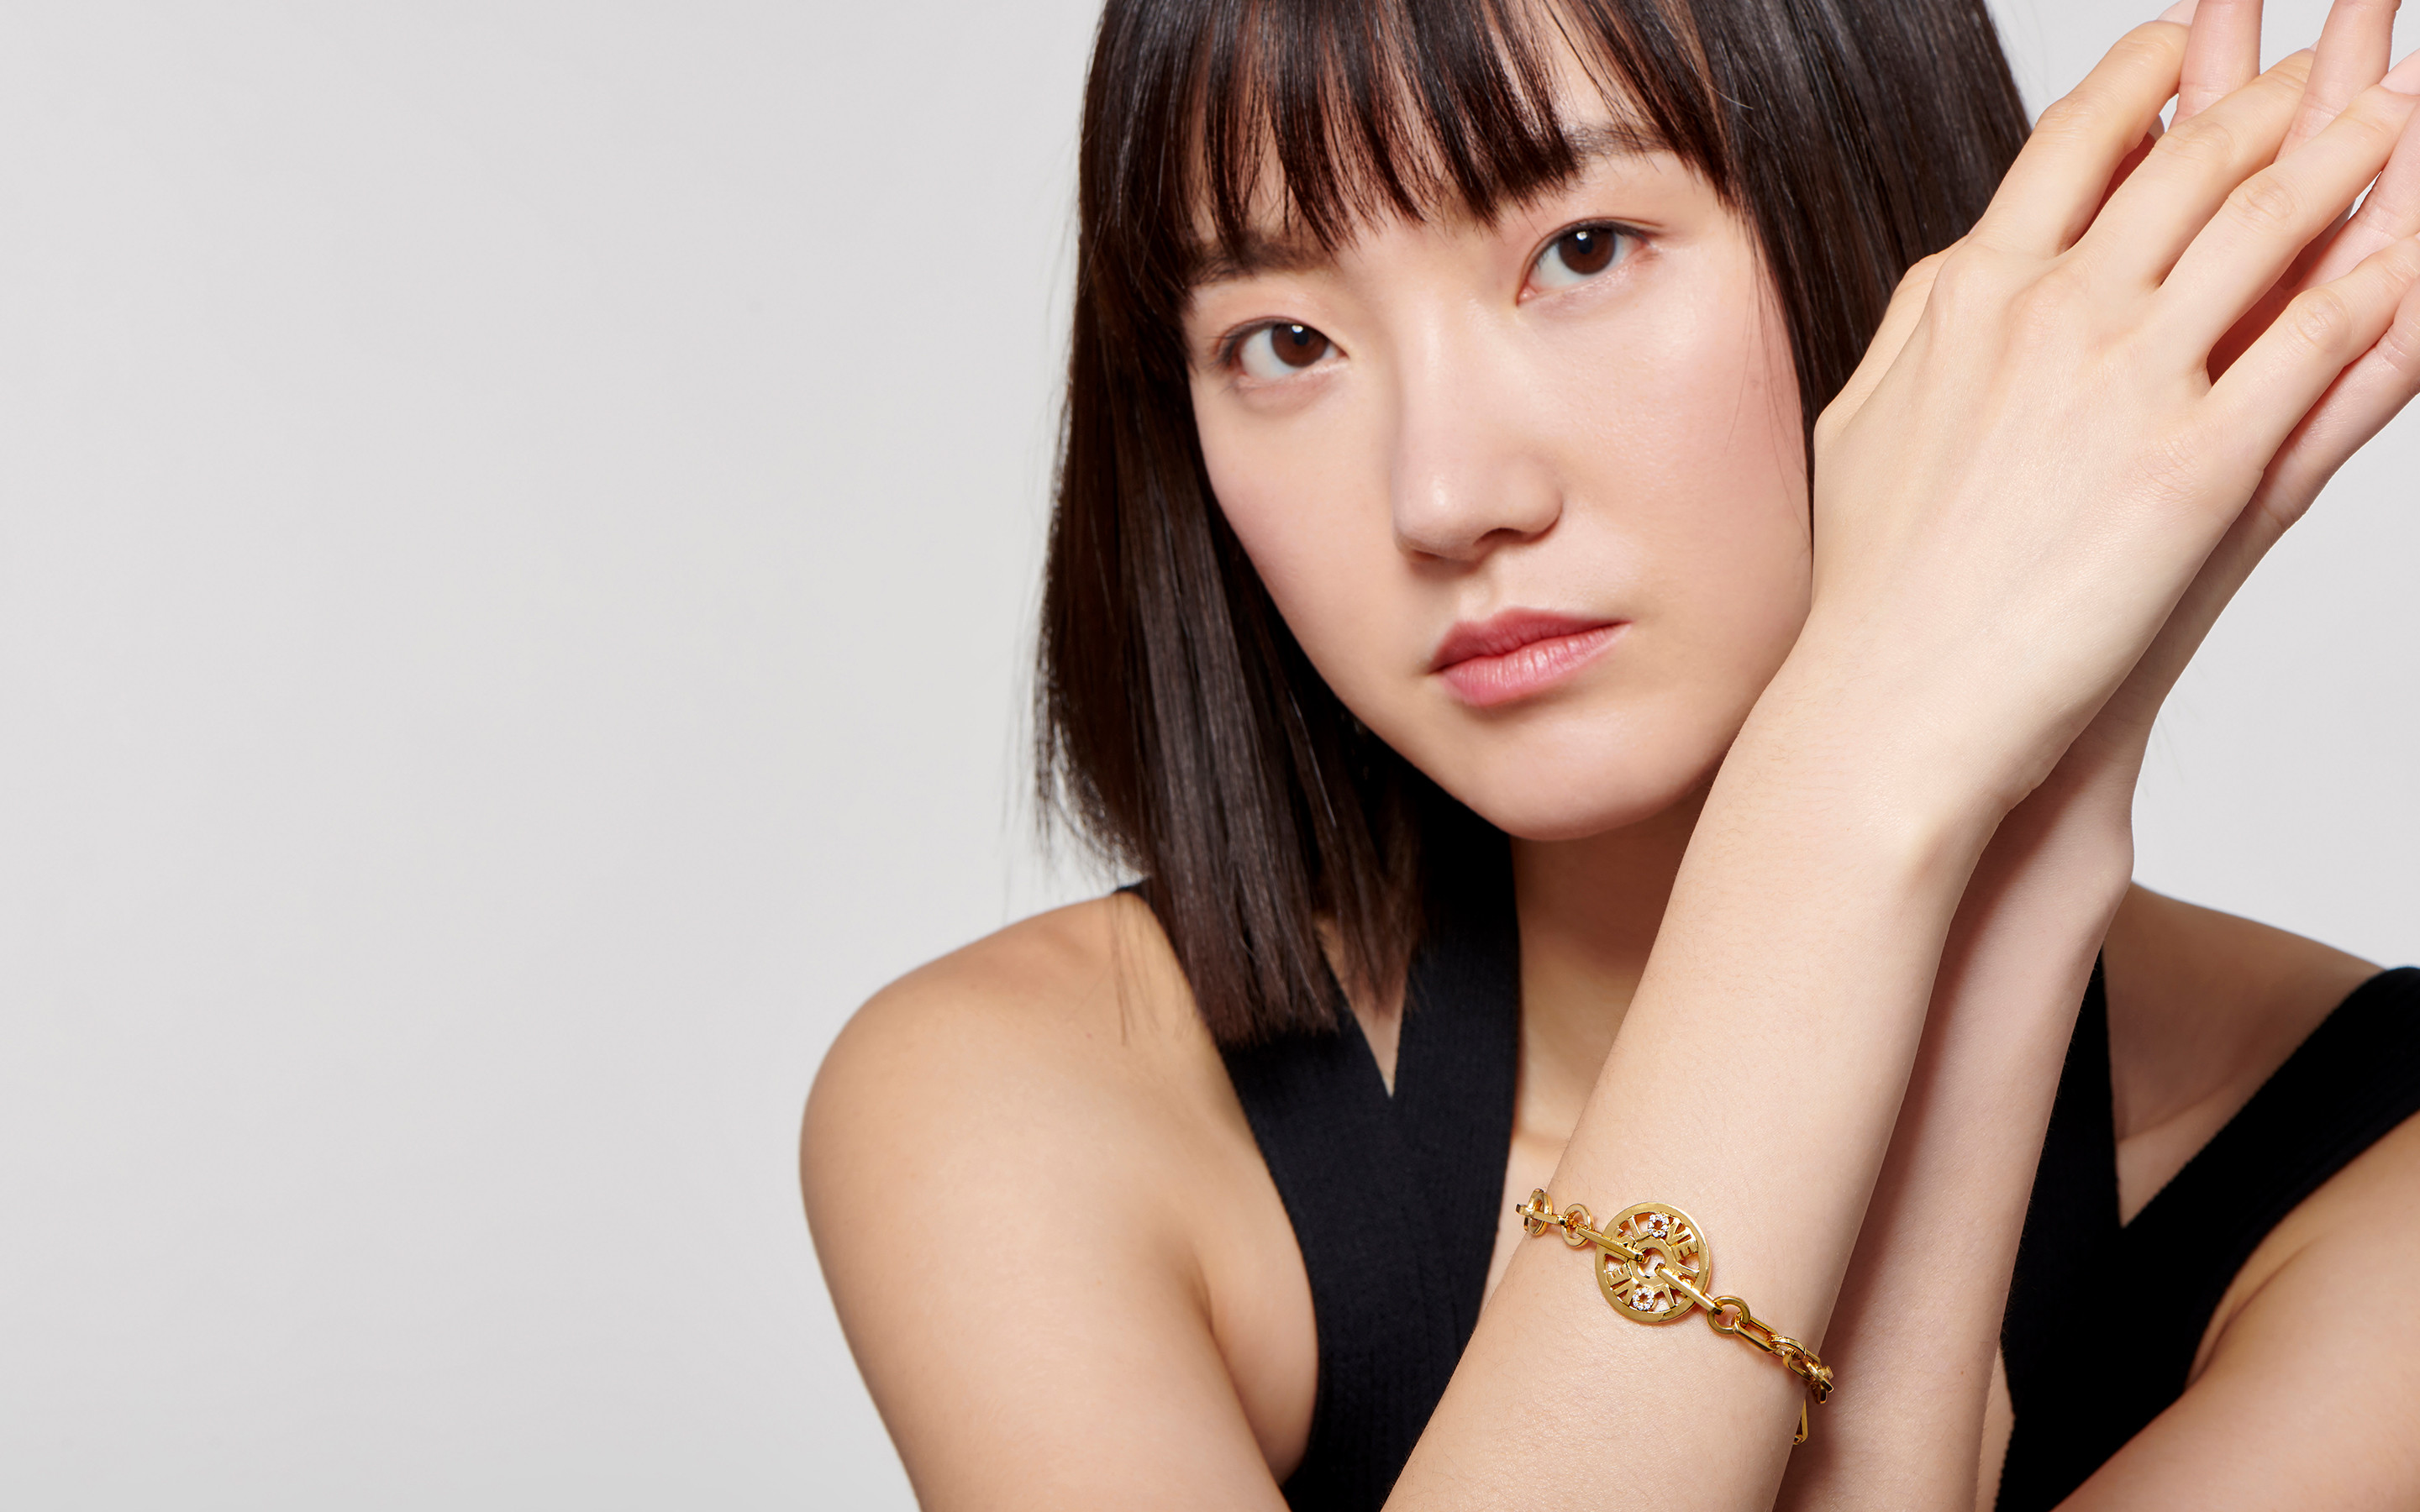 Glowing Asian model  brandishes a 22 carat gold bracelet